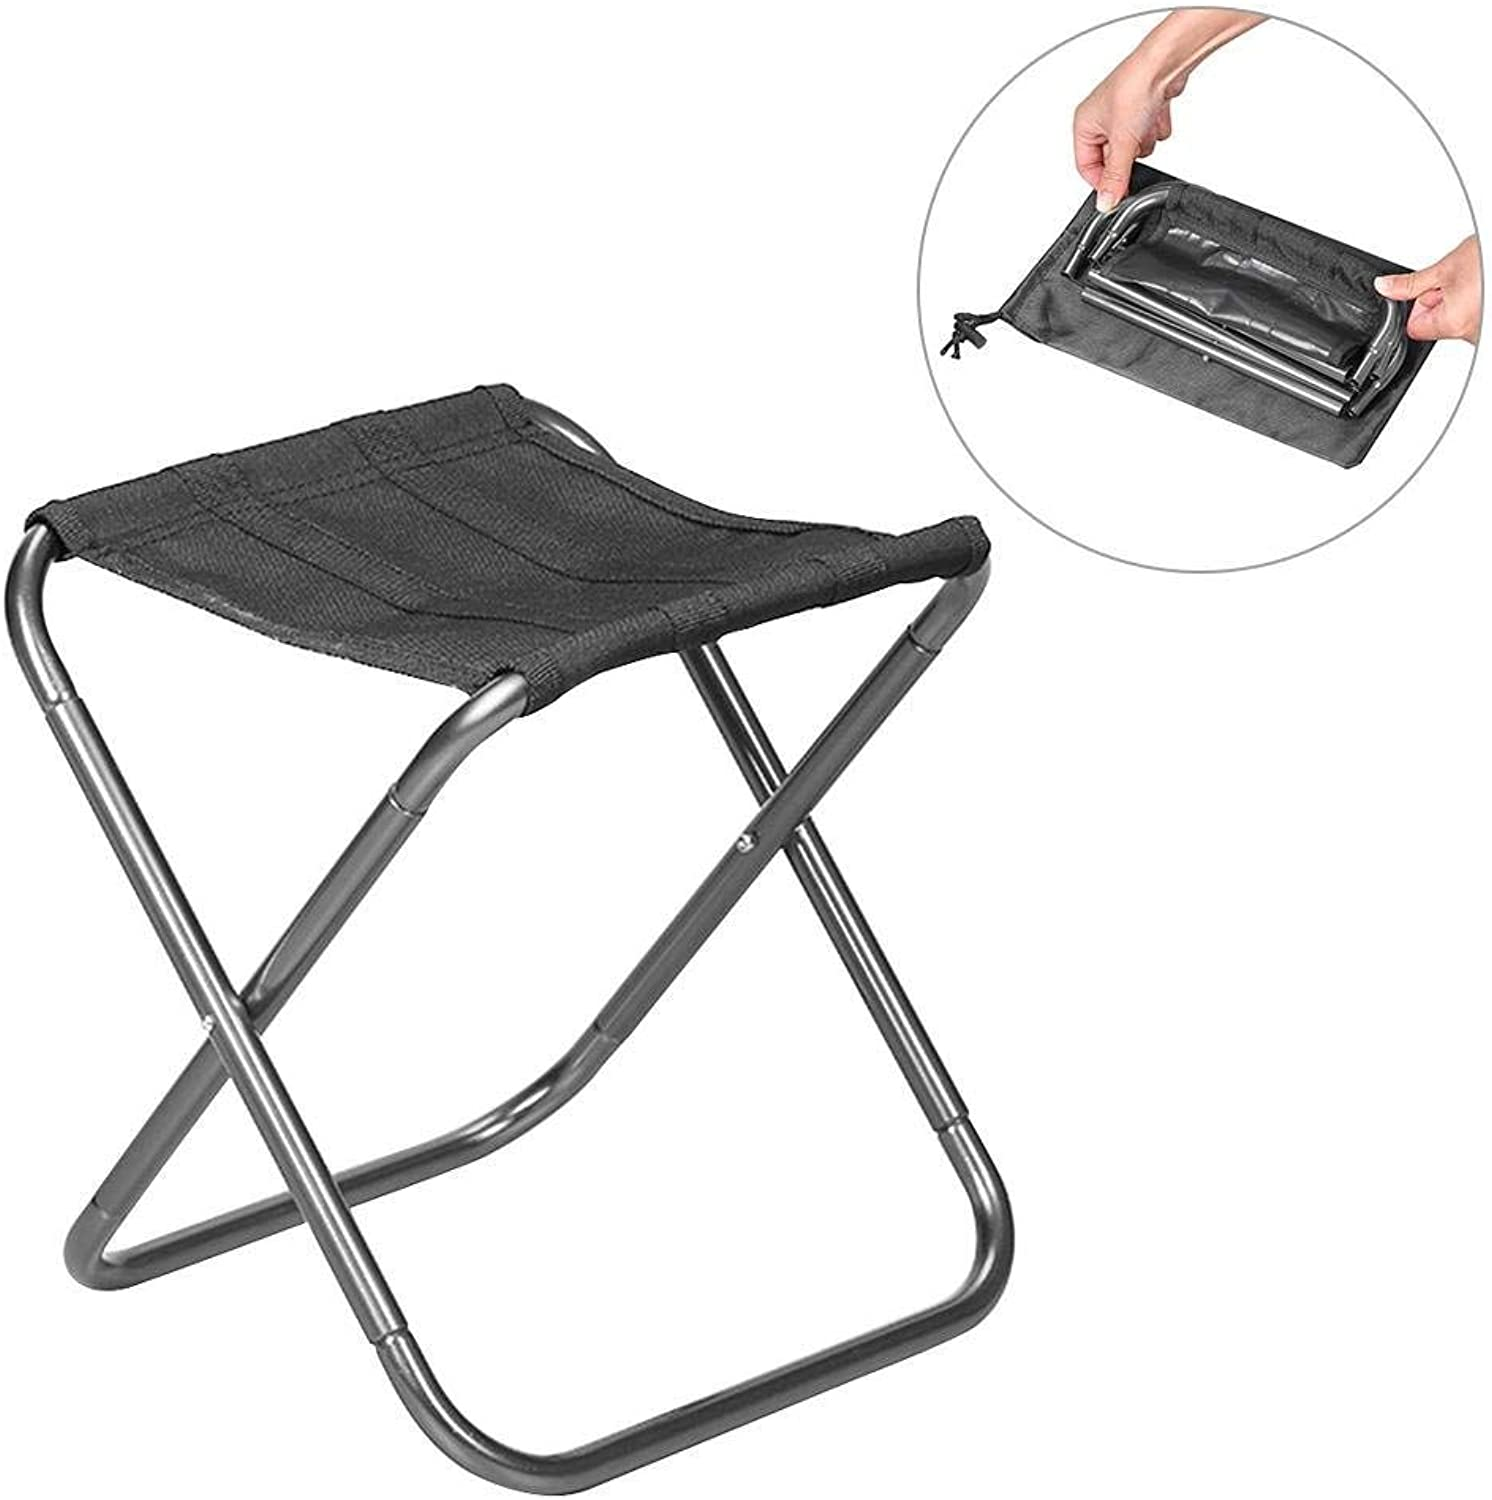 34006a82244a Outdoor Portable Folding Chair Fishing Chair Outdoor Camping Chair ...